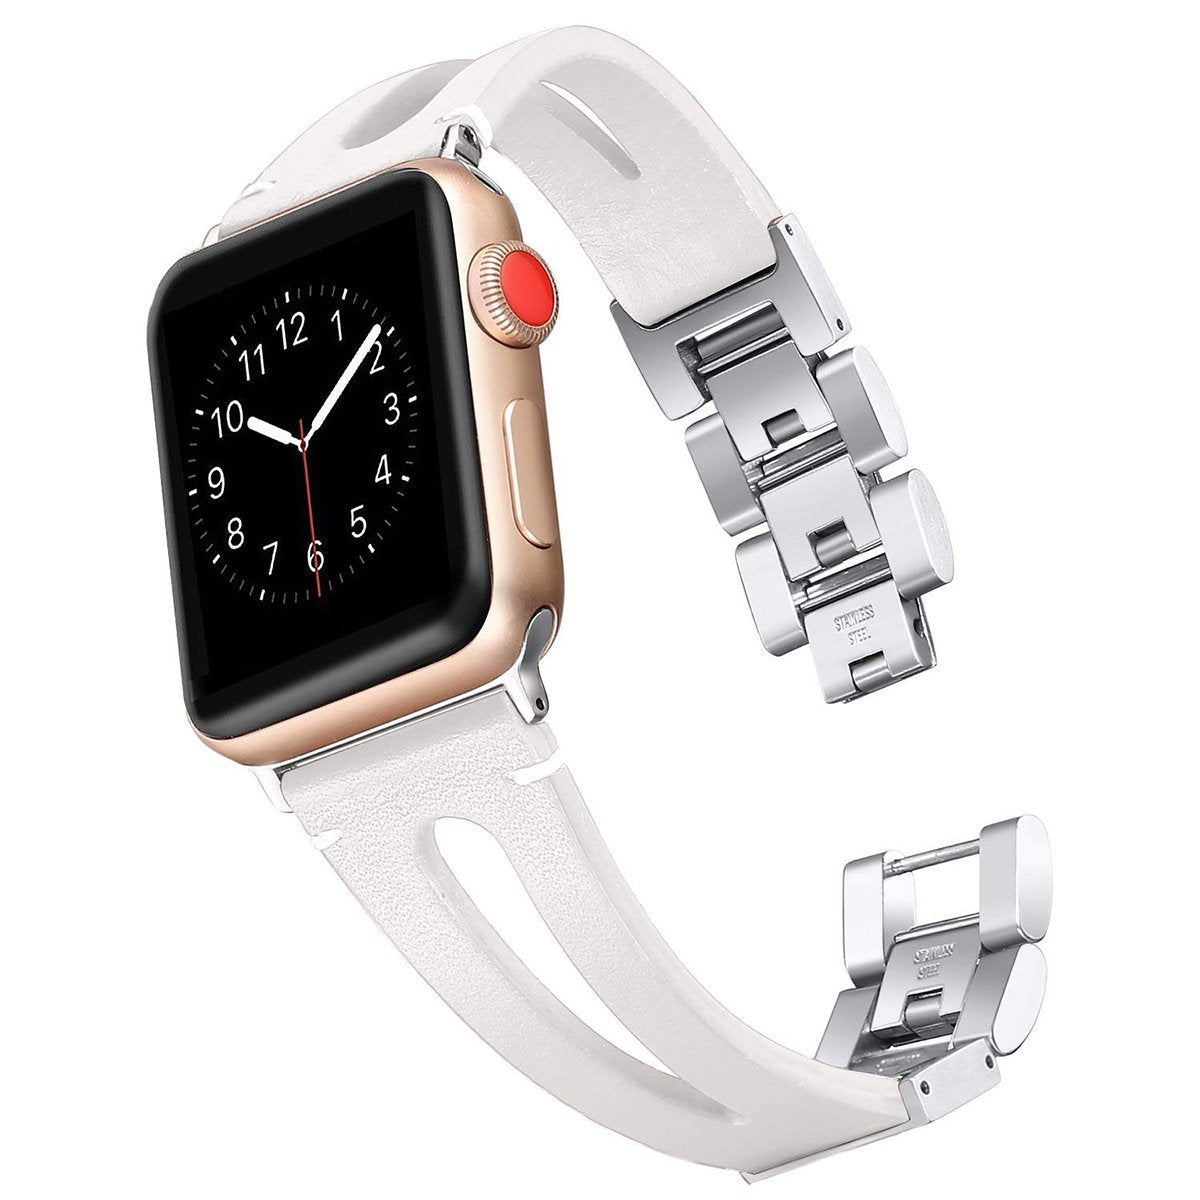 Genuine Calf Leather Apple Watch Bands 38mm/42mm/40m/44mm - iWatch Band Series 4 3 2 1 - White / 38mm-40mm - Watchbands